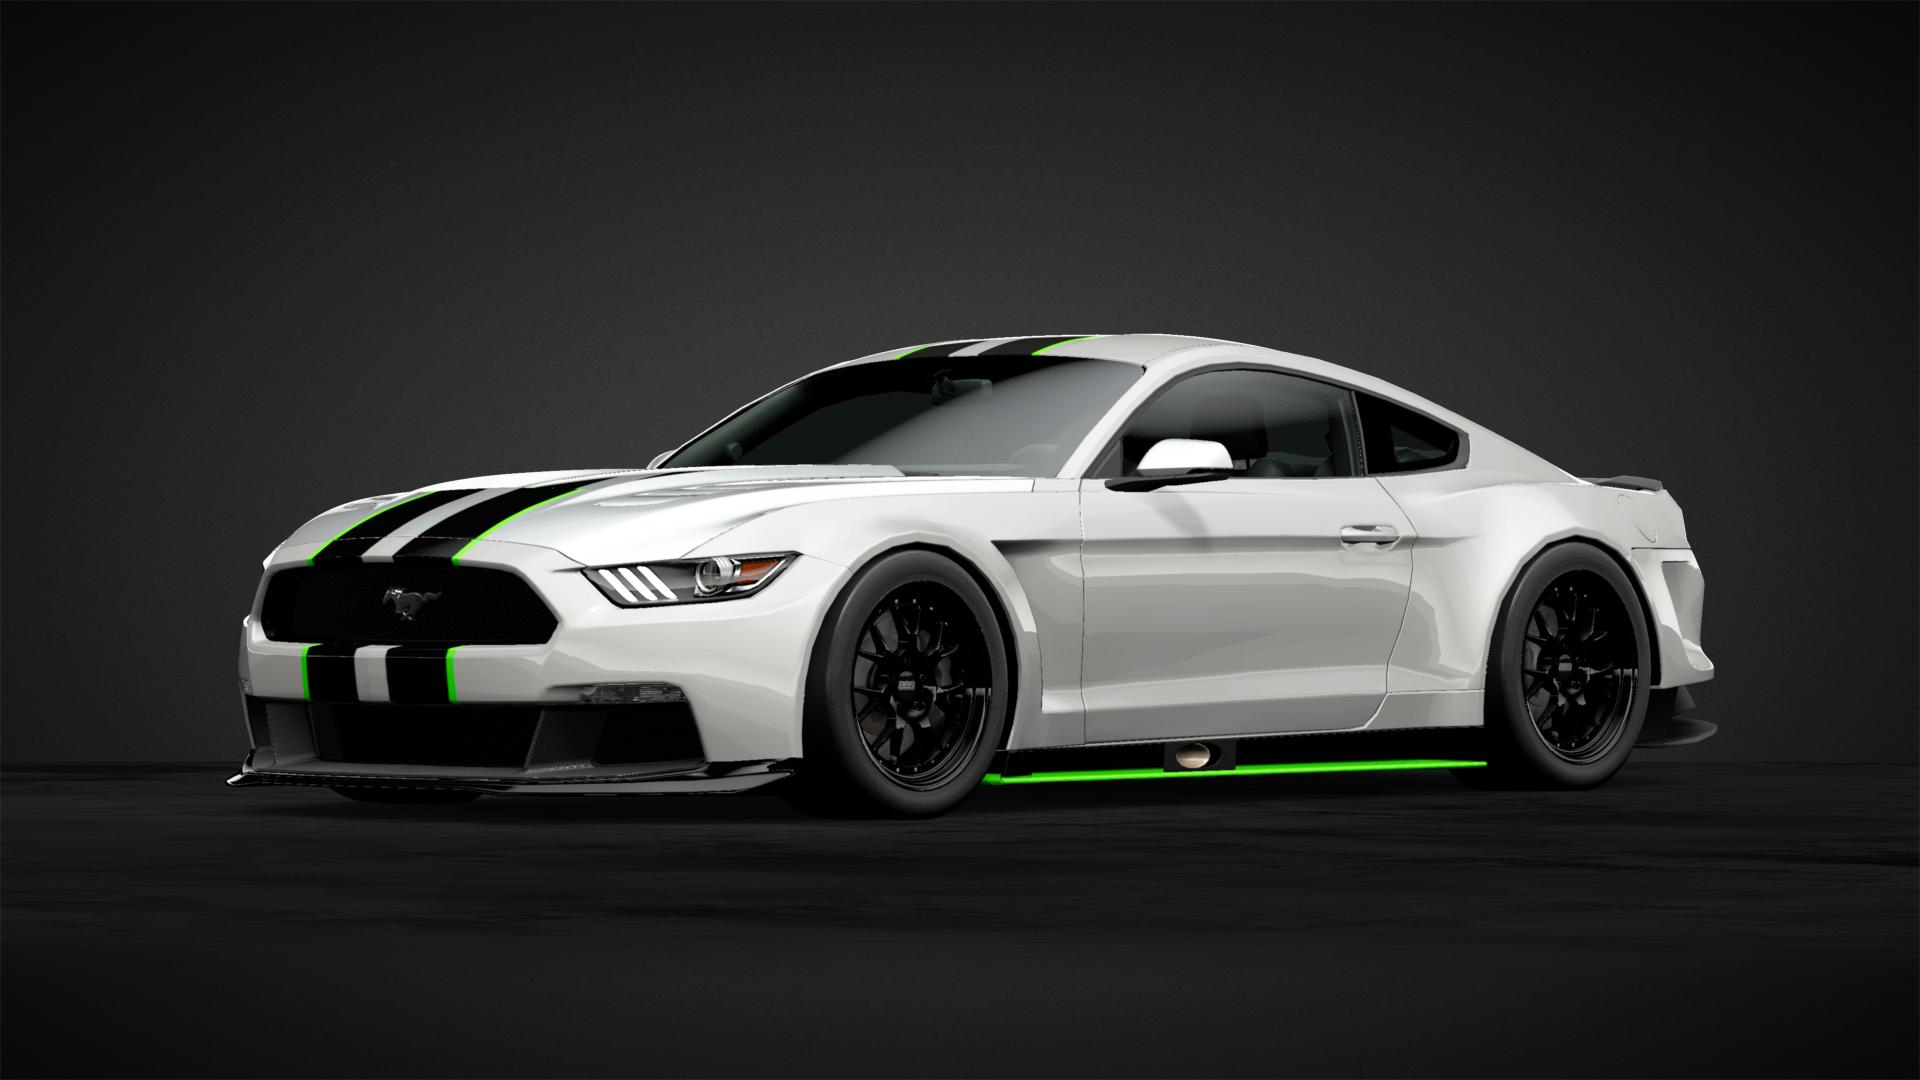 Nfs Payback Mustang Car Livery By K Foster44 Community Gran